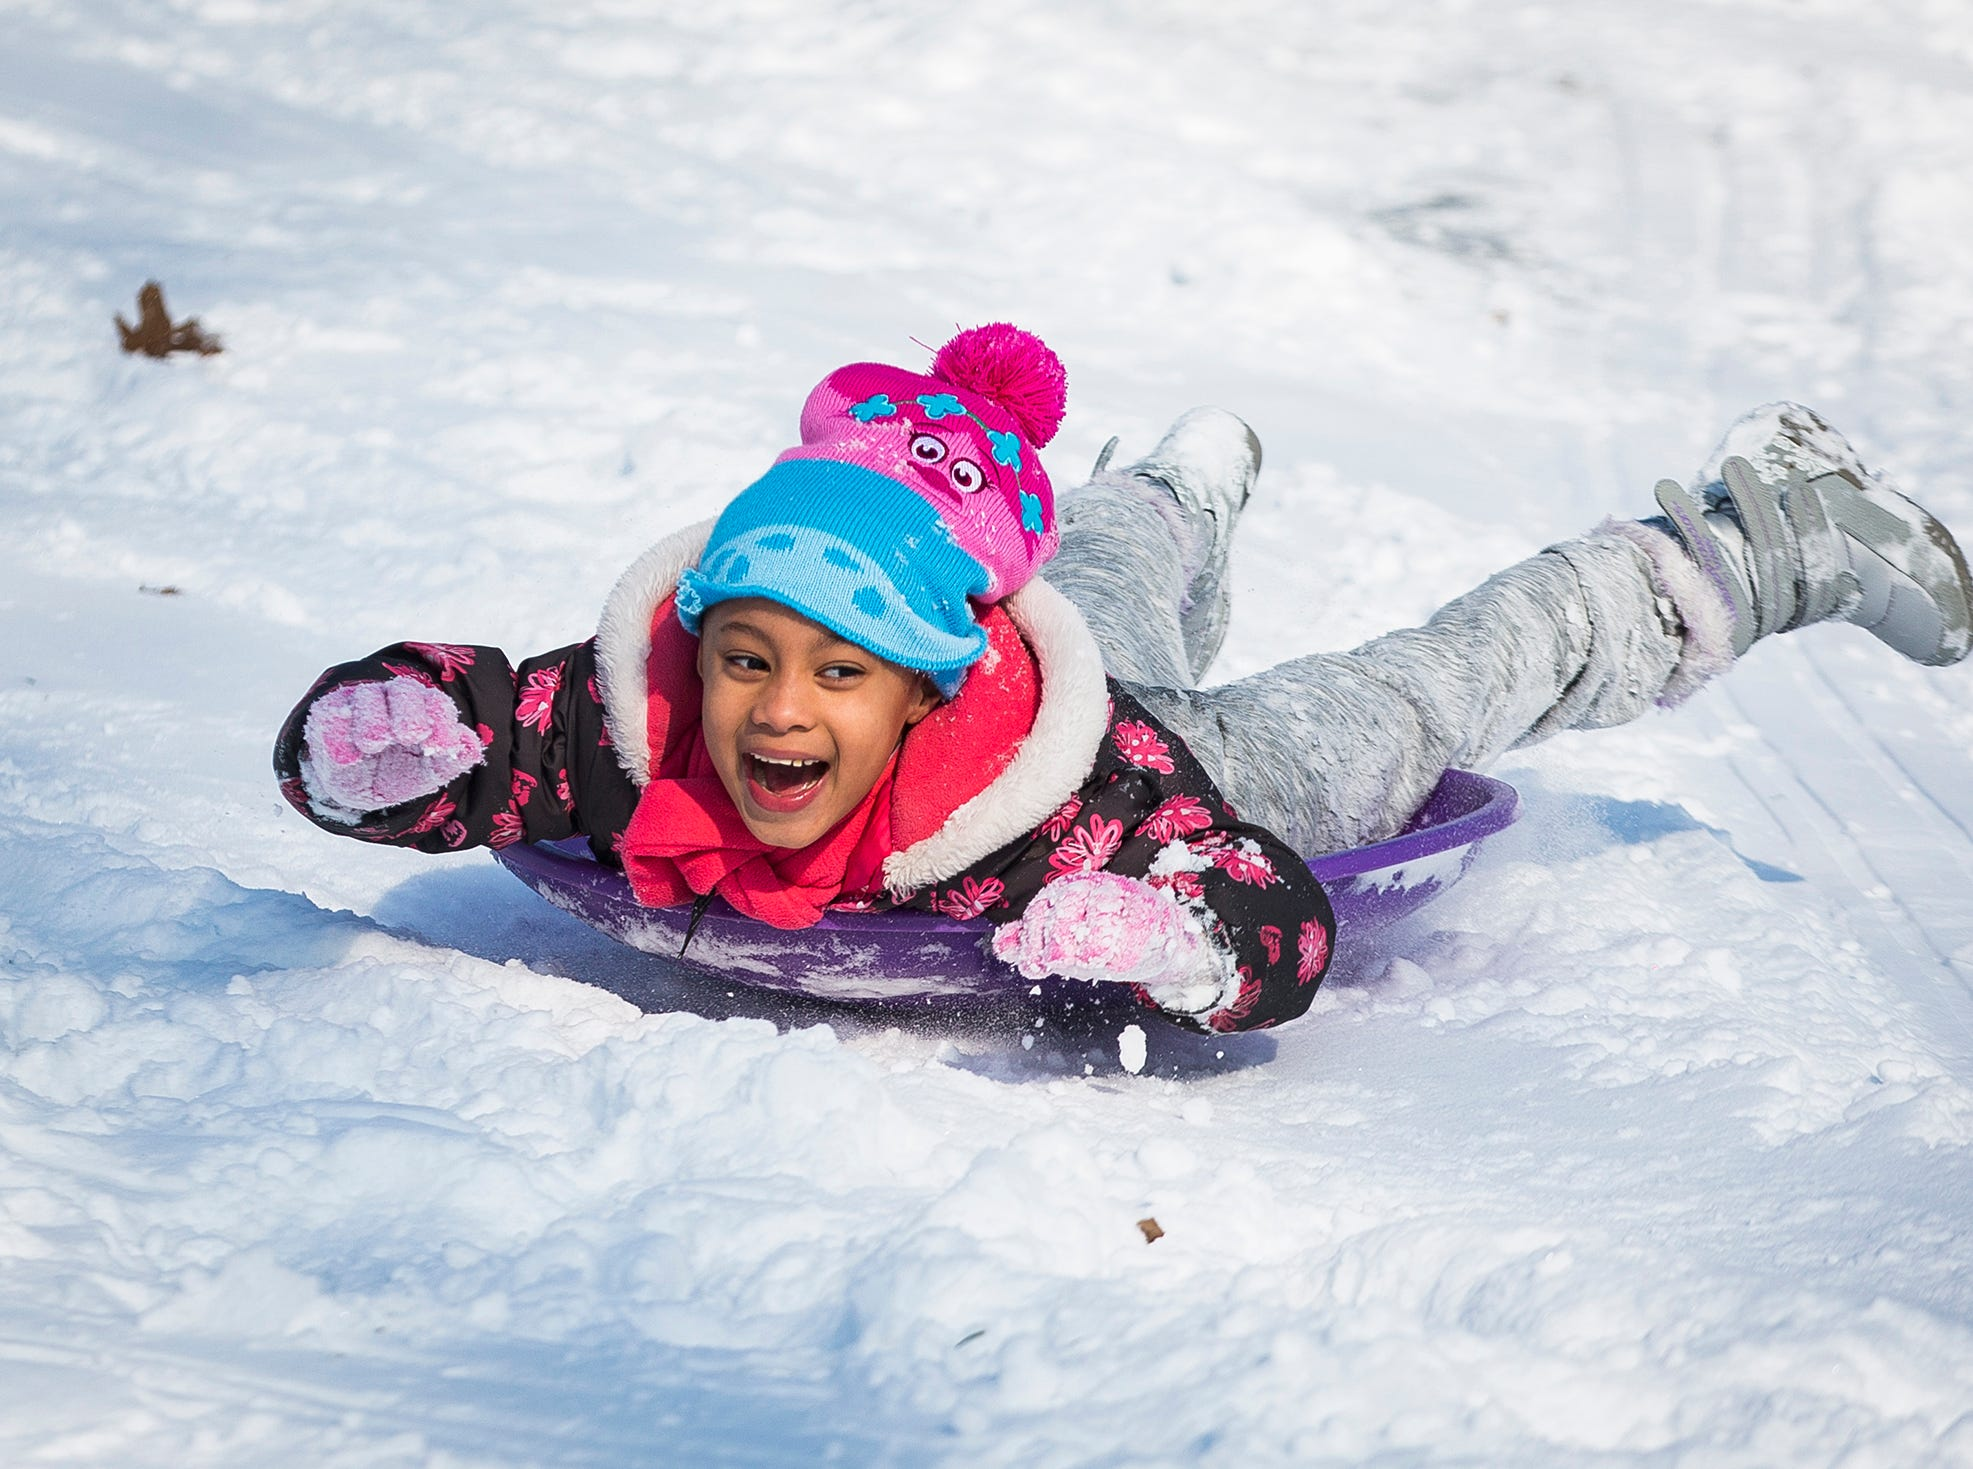 After days of intense cold, snow day makes Friday perfect for sledding